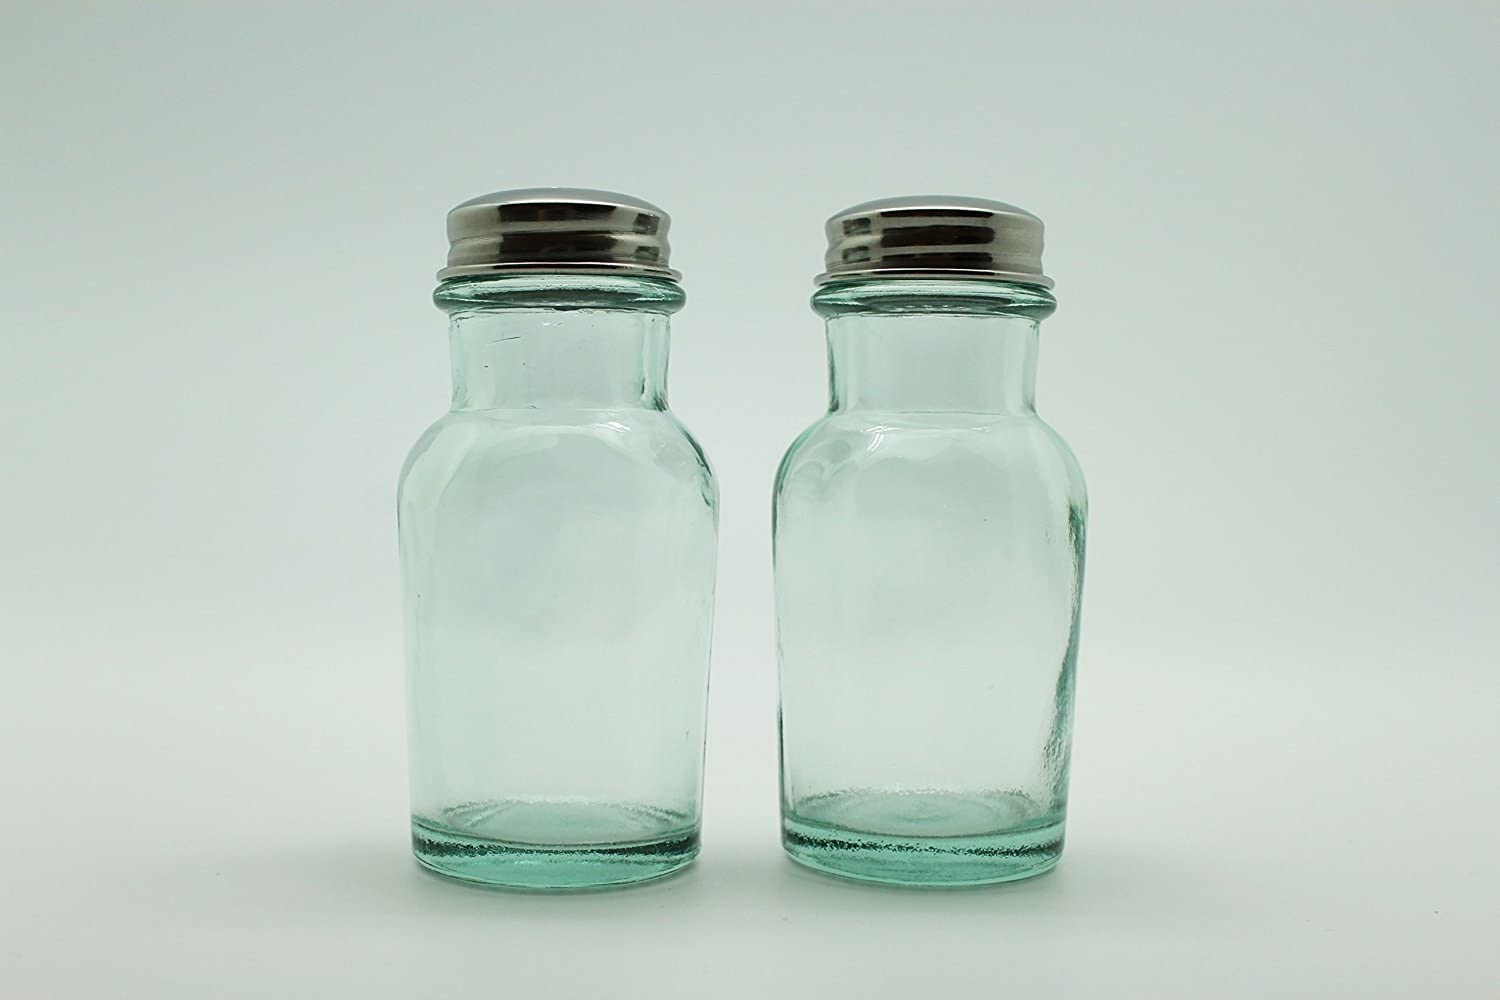 Eco Living Recycled Glass Salt and Pepper Shaker Set Round Top